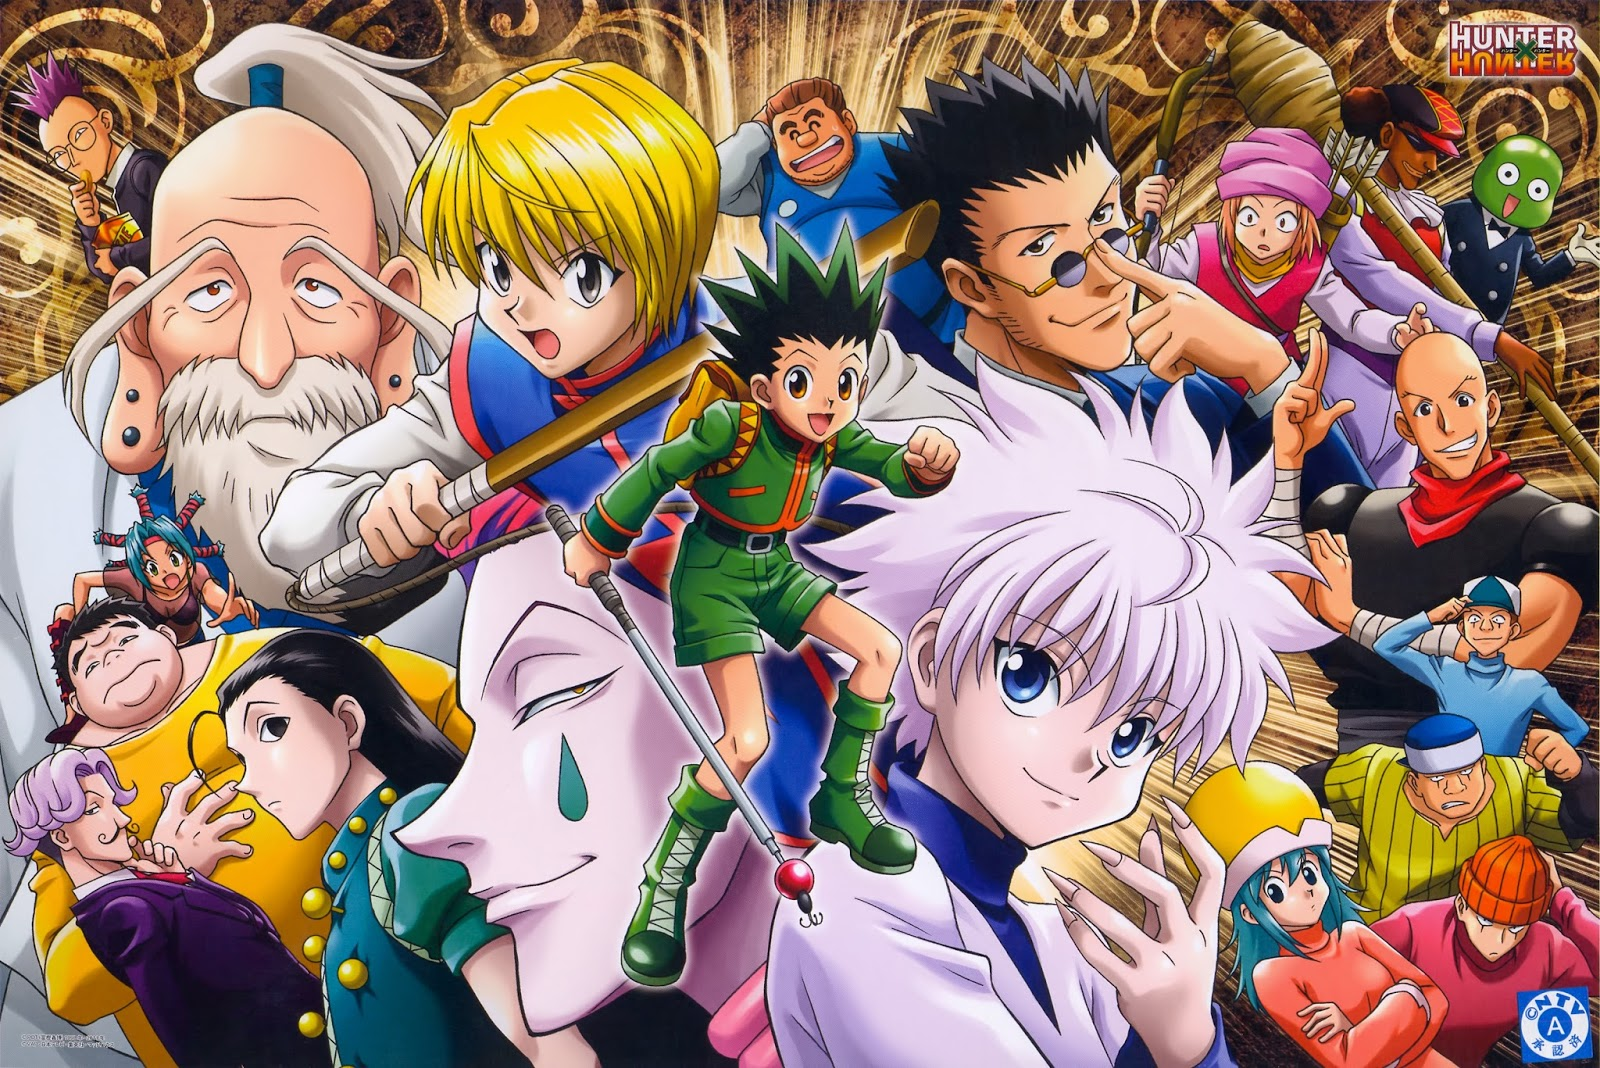 The top best selling manga of 2013